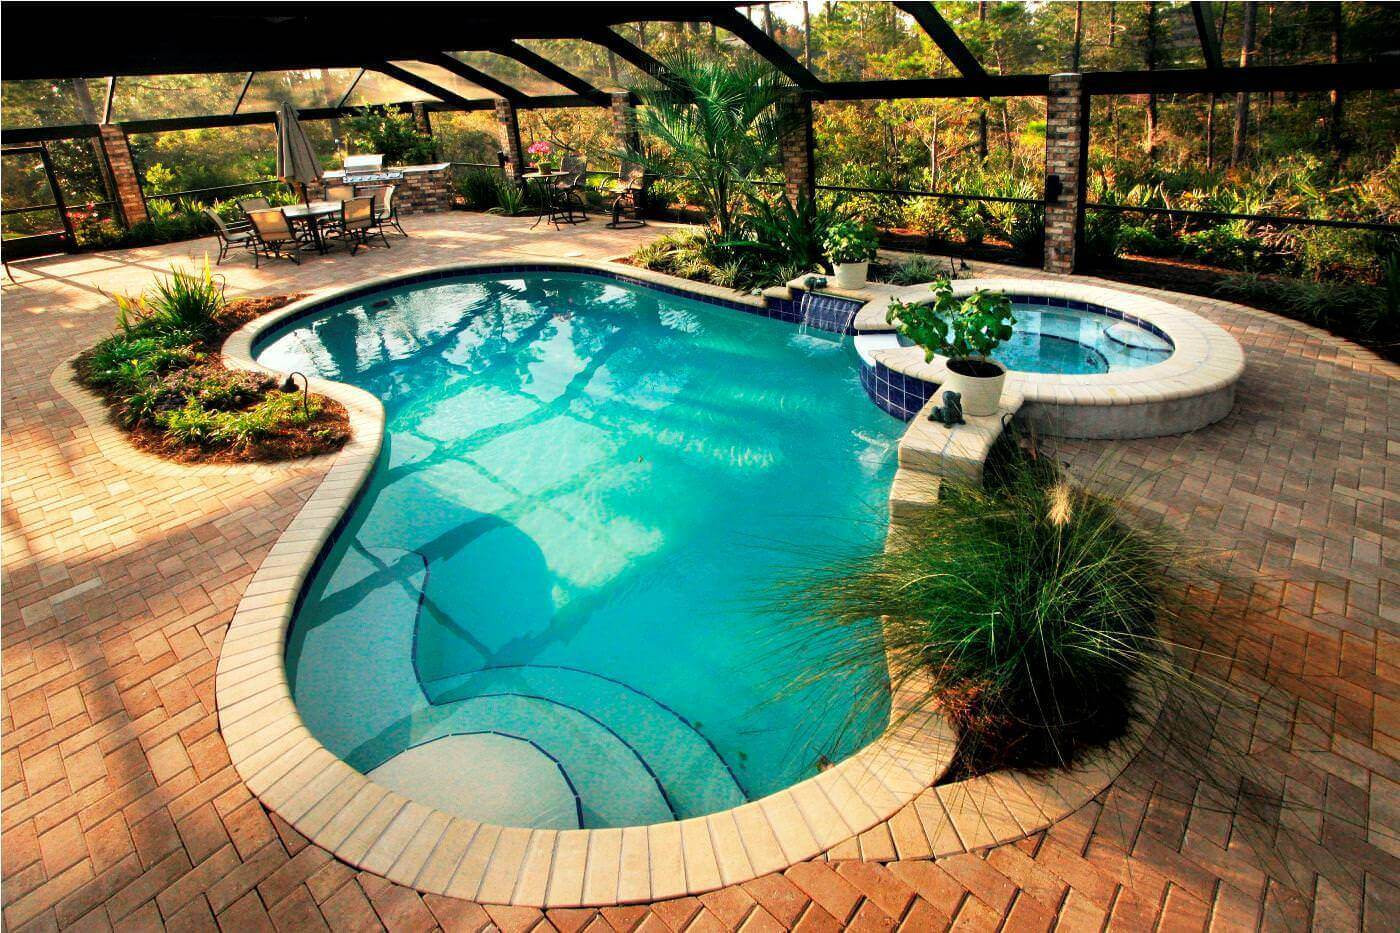 Best ideas about Cost Of An Inground Pool . Save or Pin Prices Inground Pools Installed Inground Pool Prices Now.